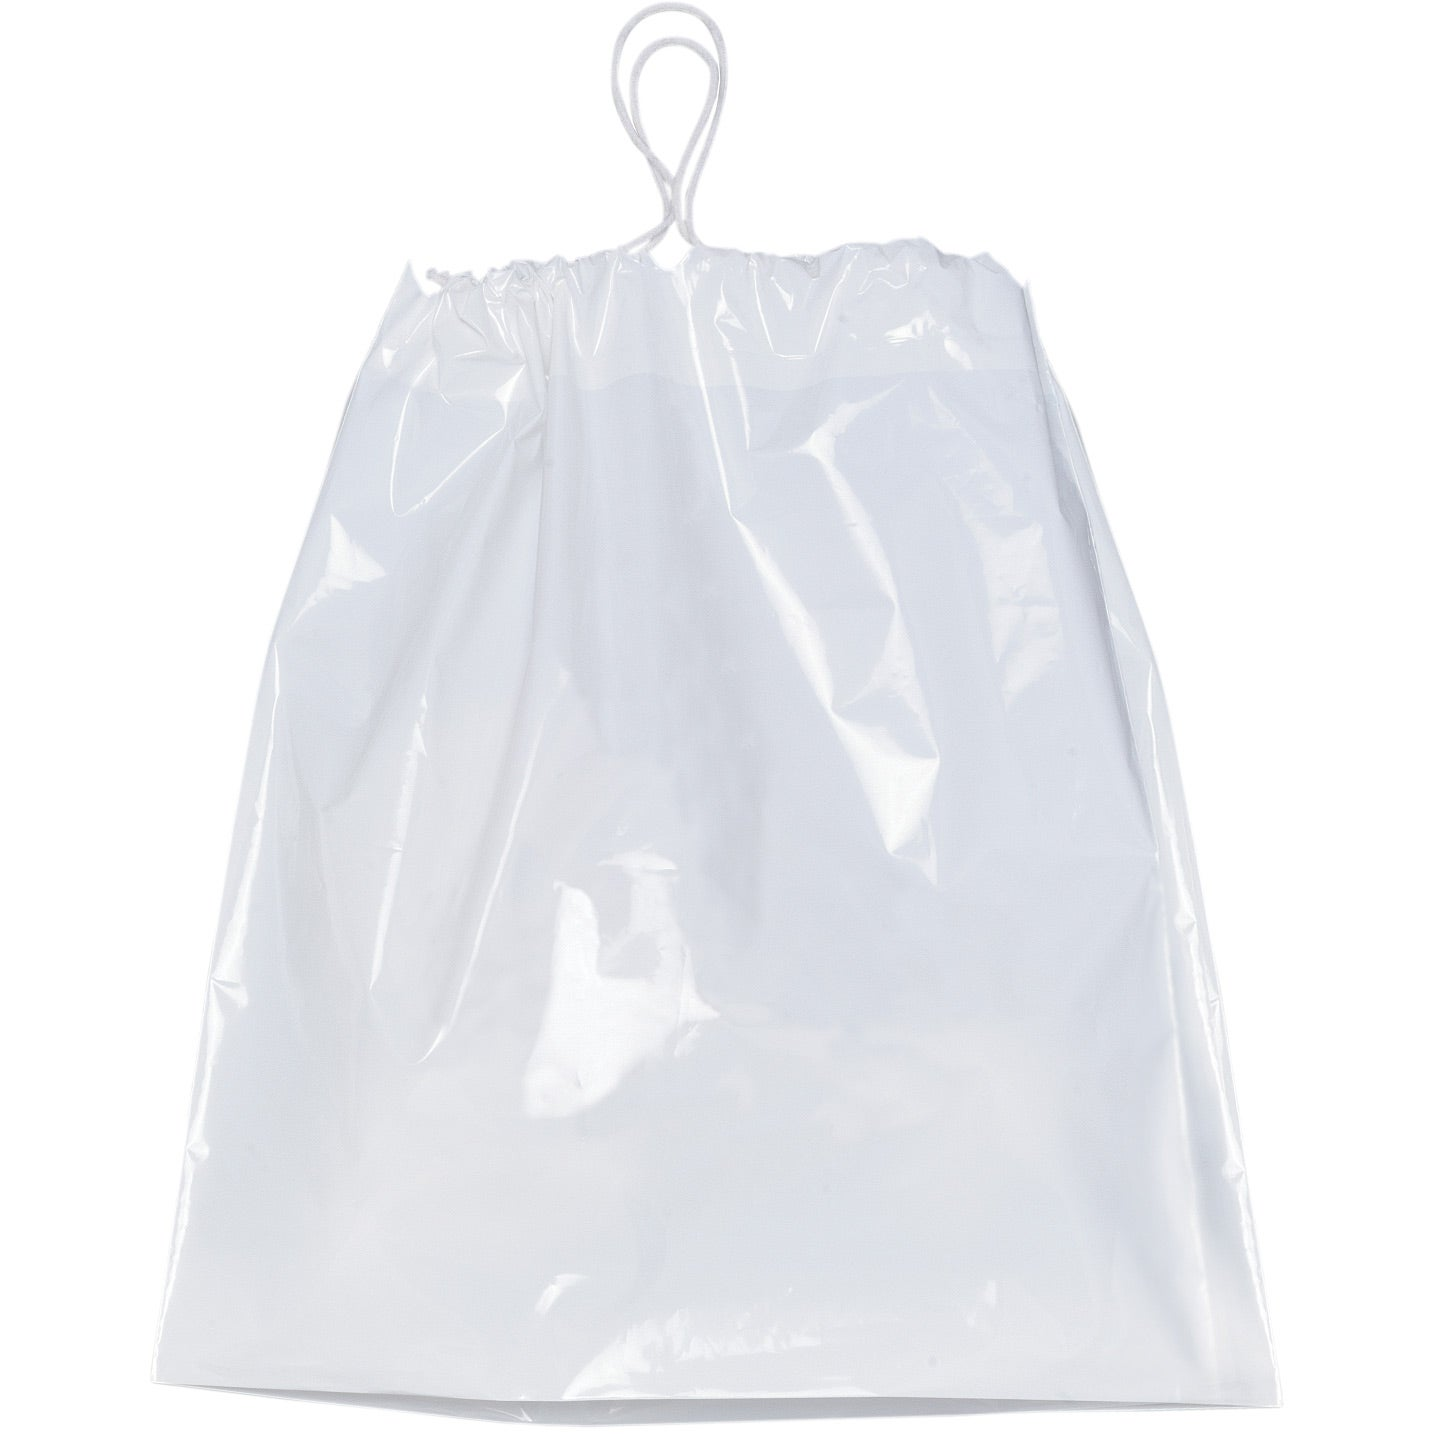 Promotional Plastic Bag With Cotton Drawstrings Custom Logo For 0 91 Ea